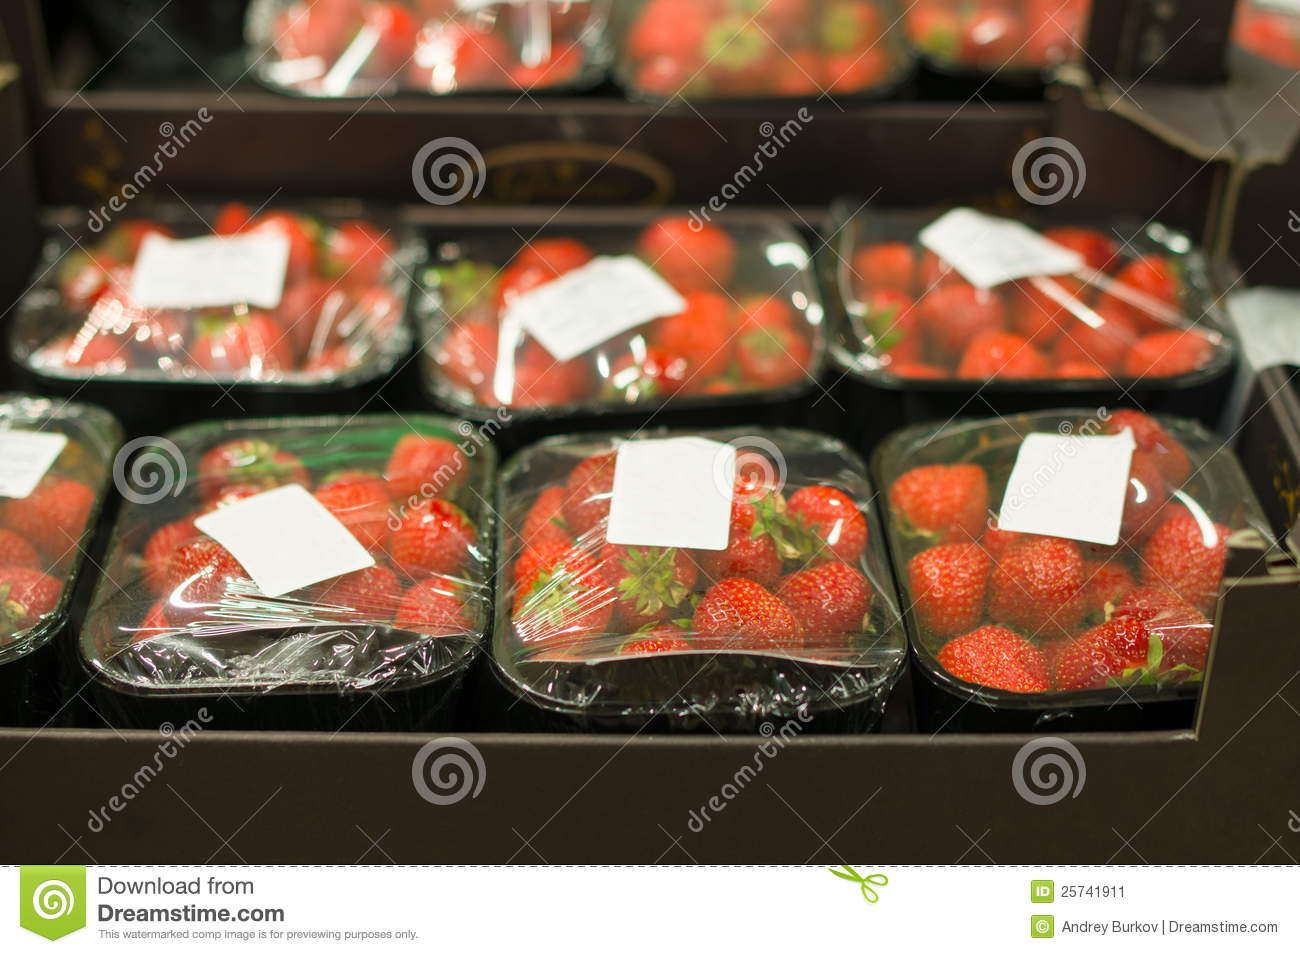 Strawberry in small boxes in supermarket